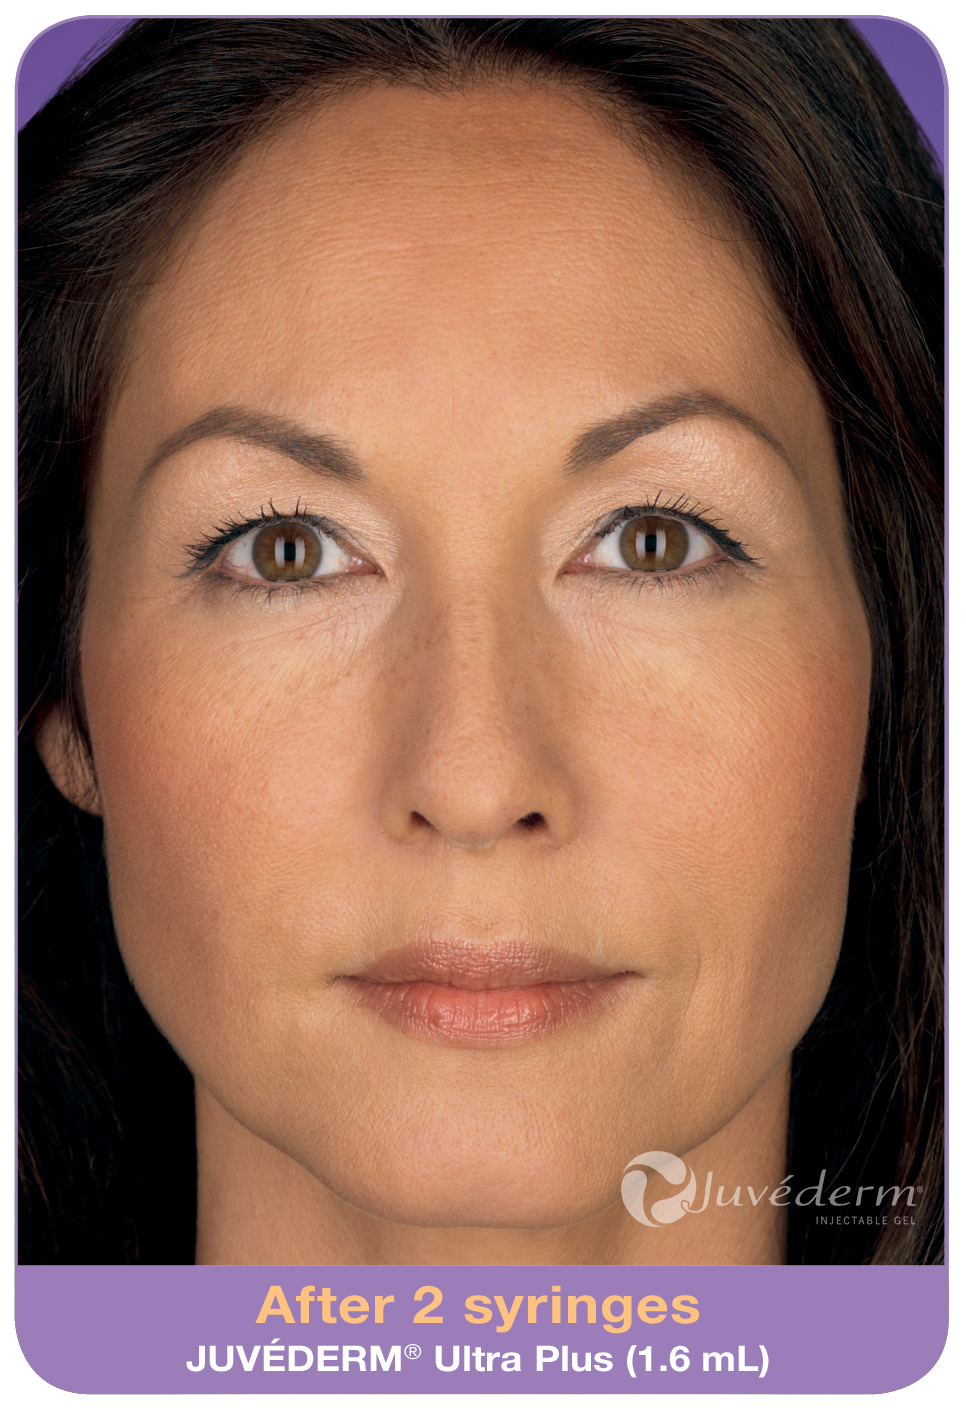 Juvederm treatment at Florida Aesthetics and Medical Weight Loss in Brandon, Fl